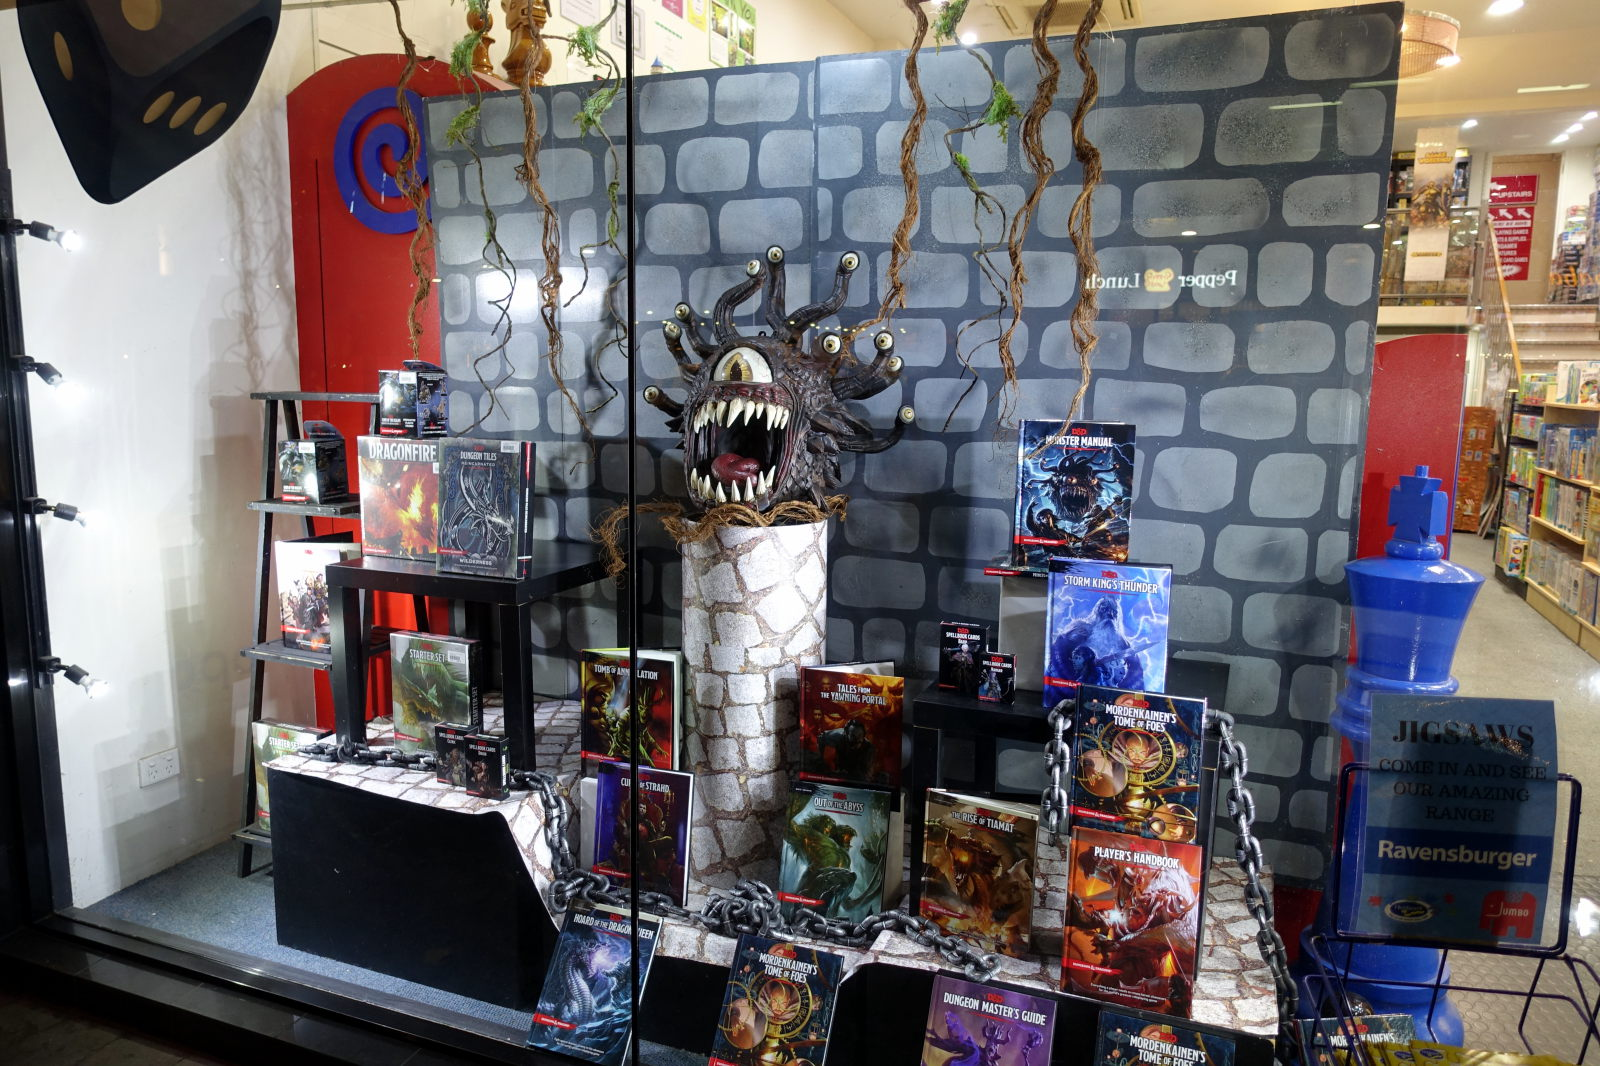 Display window with few RPG rulebooks and a figure of beholder.